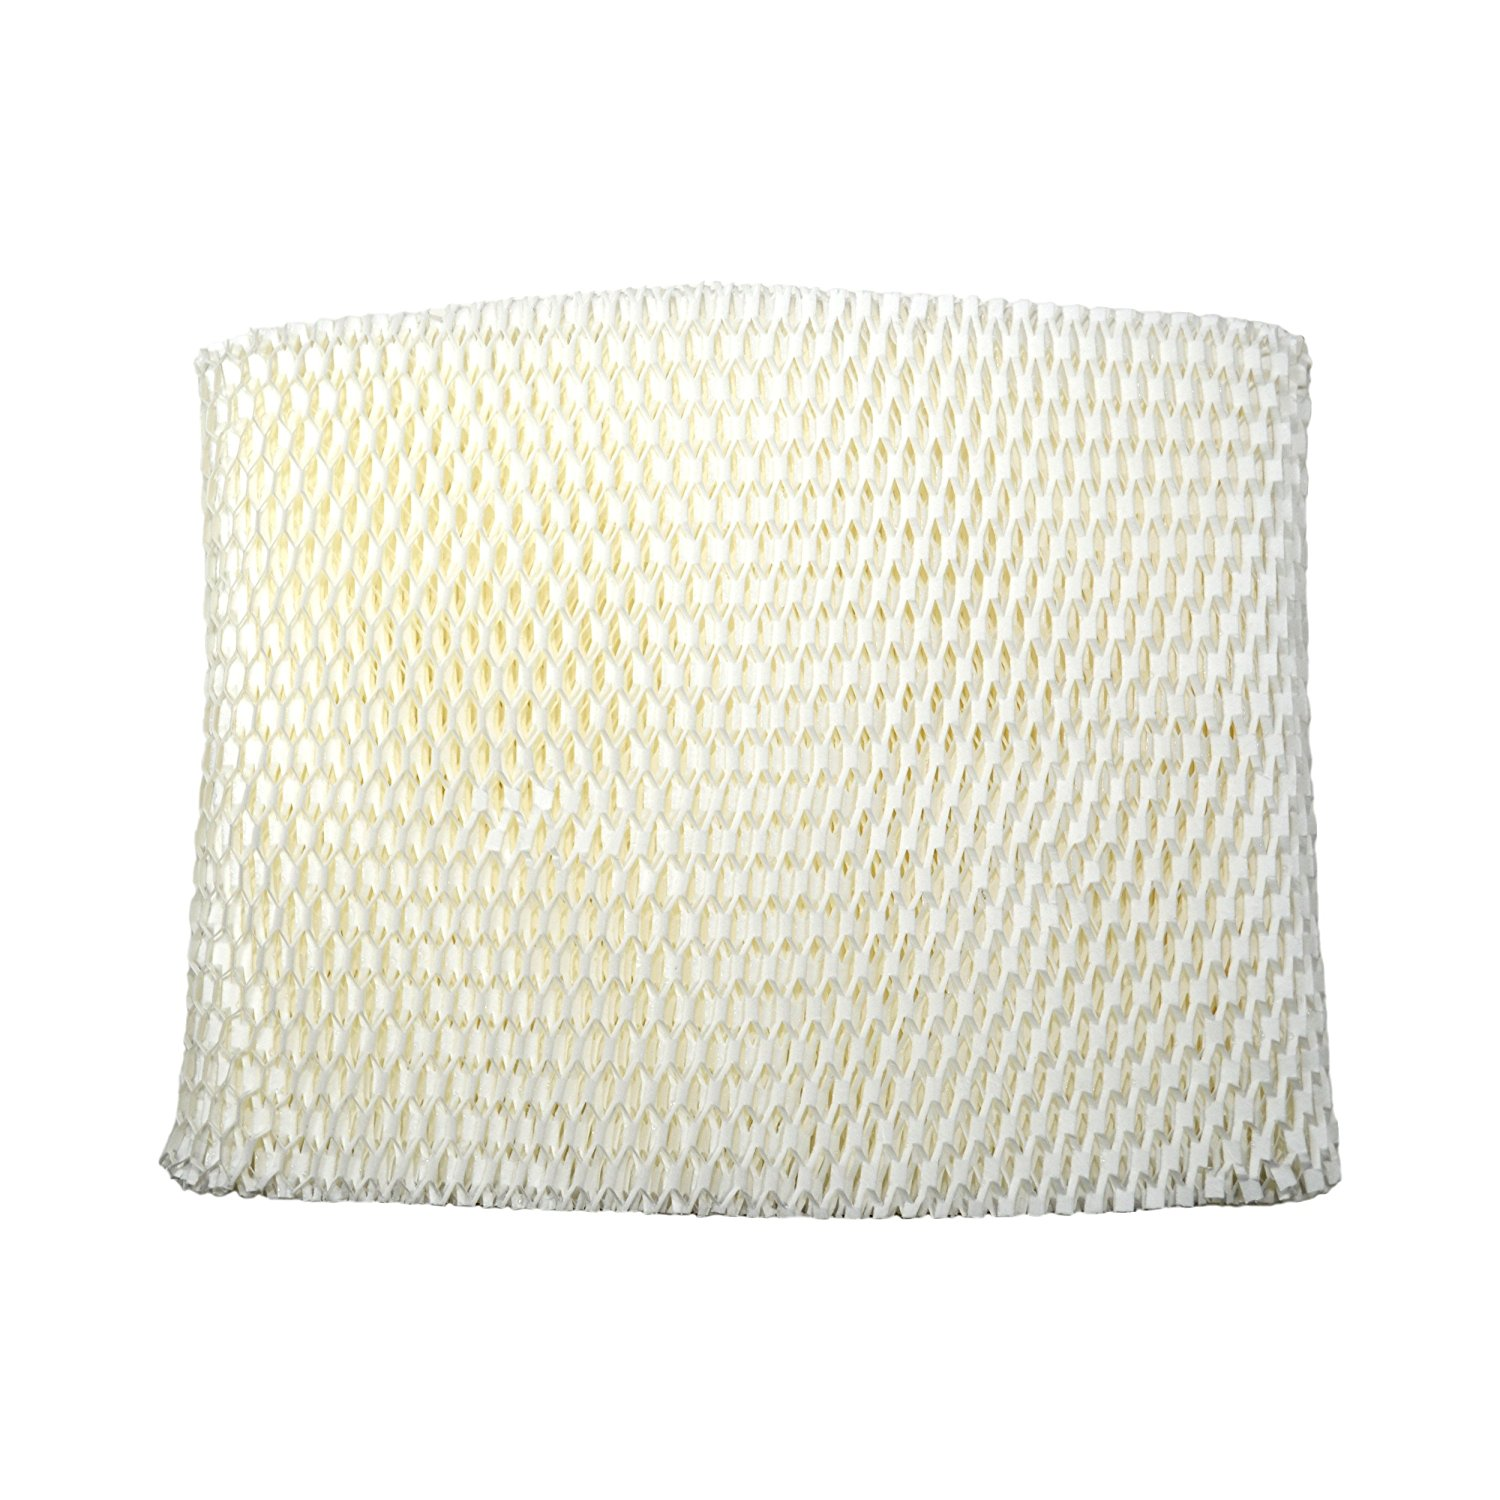 HQRP Room Humidifier Filter for Idylis 0110950 Wick Filter H65 / H65-ID / RPS H65-C Replacement + HQRP Coaster